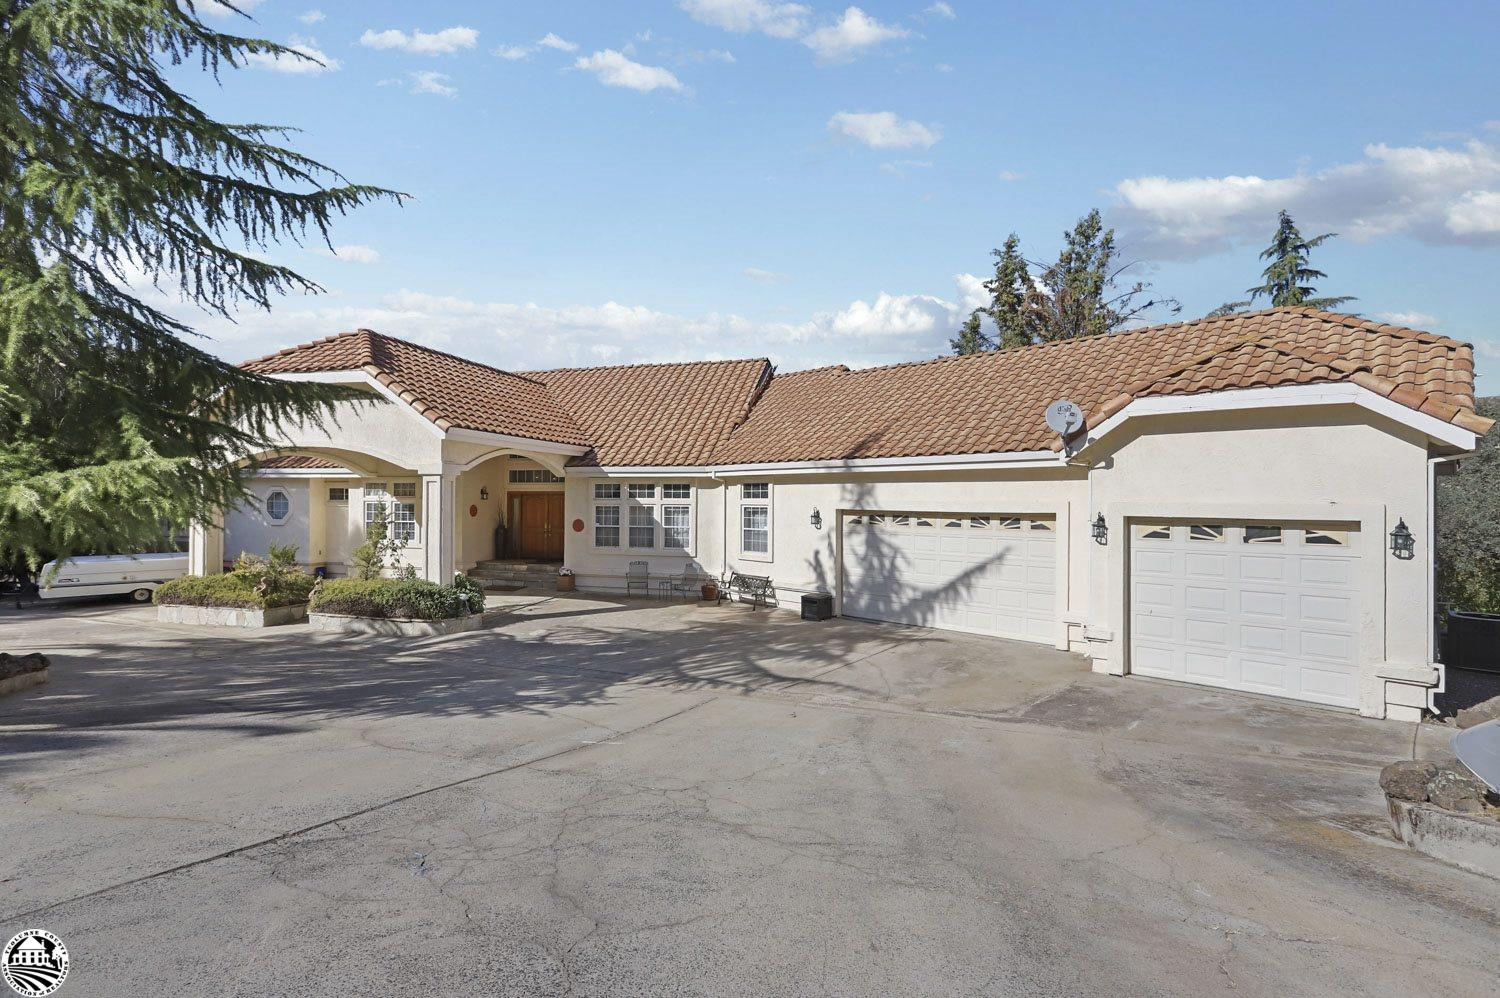 Photo of 14772 Holman Mountain Road, Jamestown, CA 95327